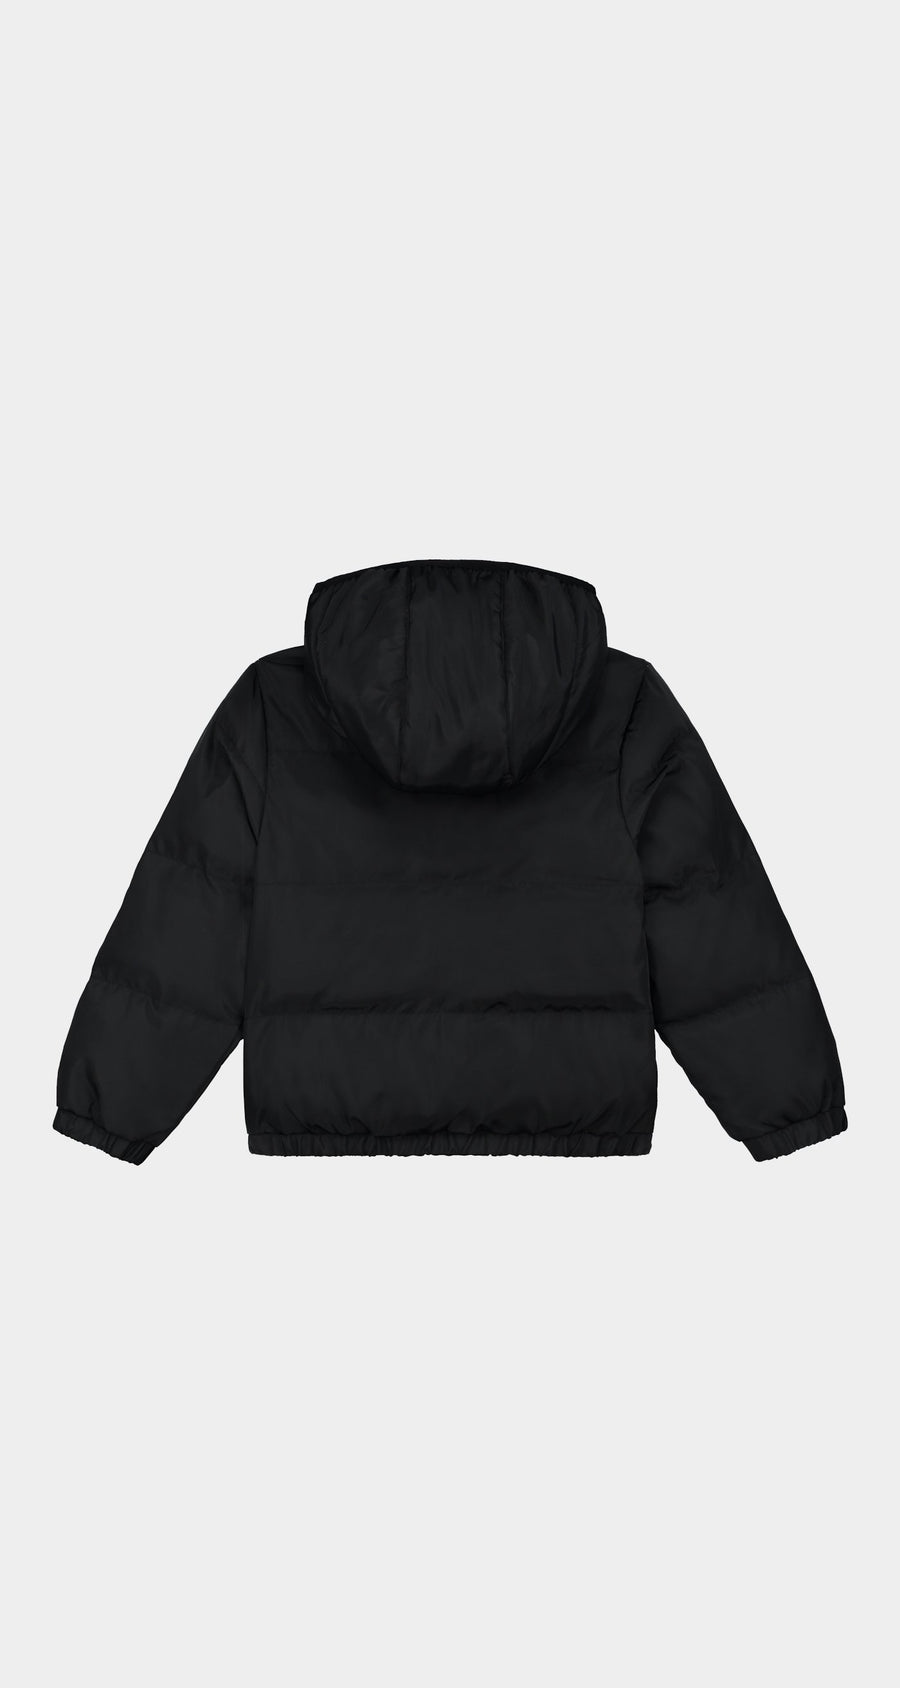 Daily Paper - Black Kids Puffer Jacket - Rear